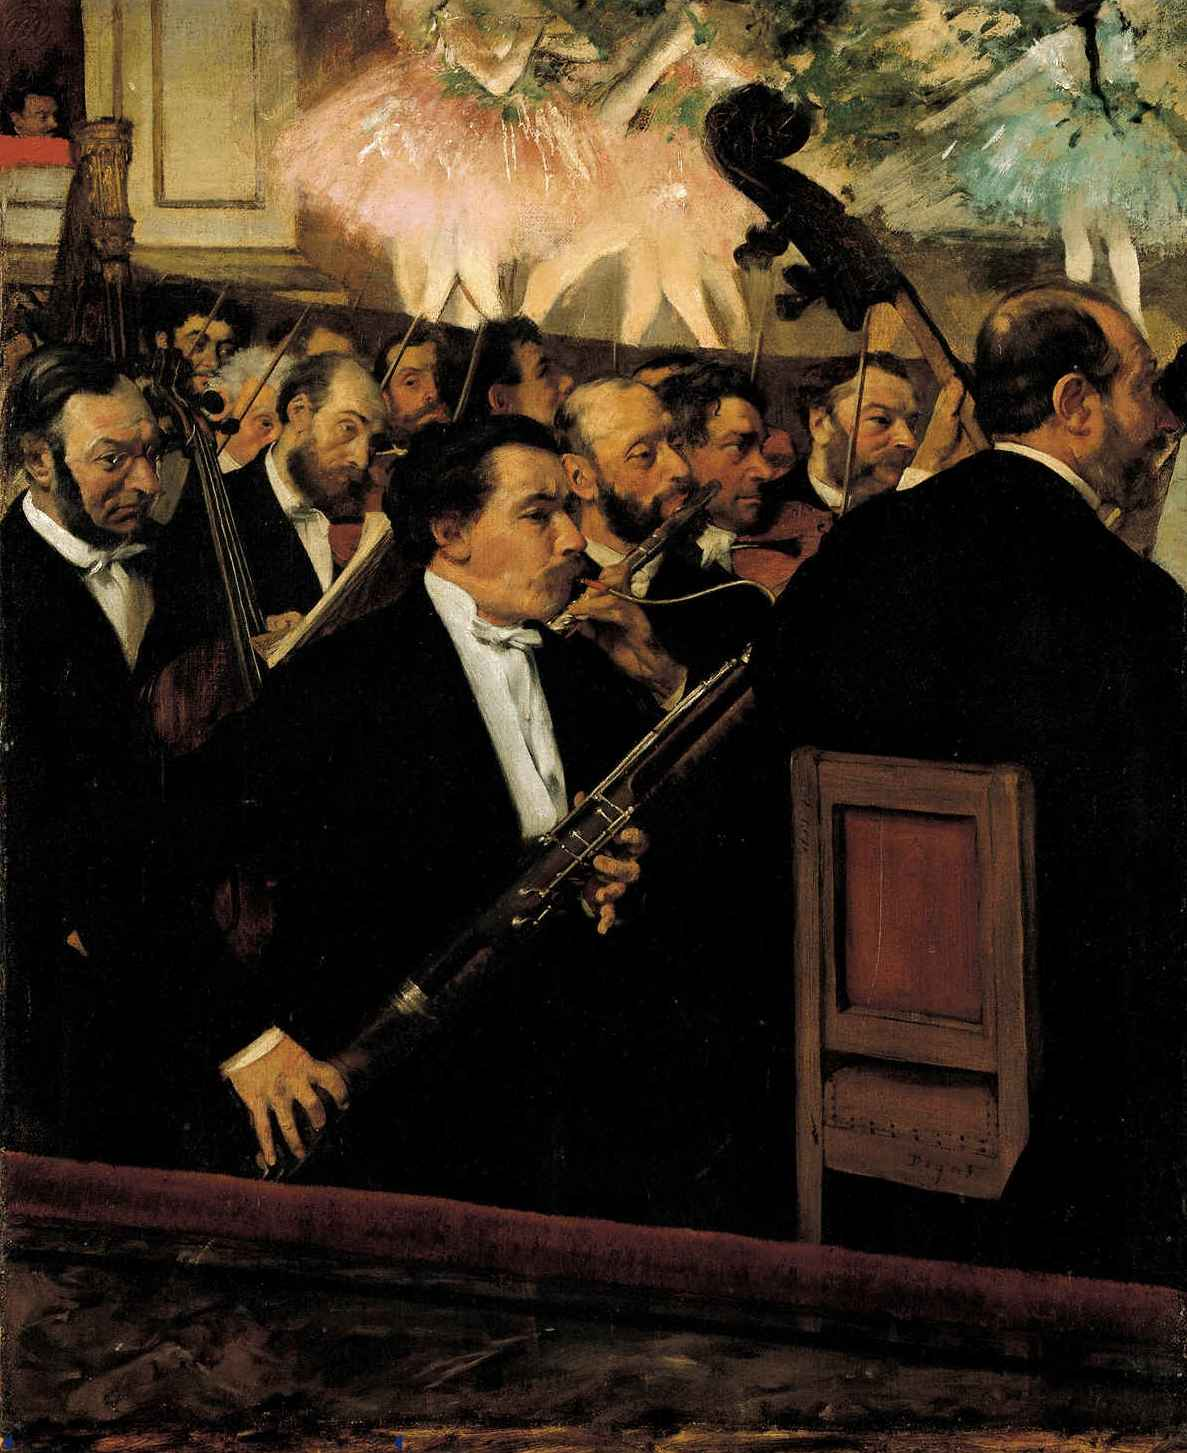 https://upload.wikimedia.org/wikipedia/commons/3/34/Degas_l%27orchestre.jpg